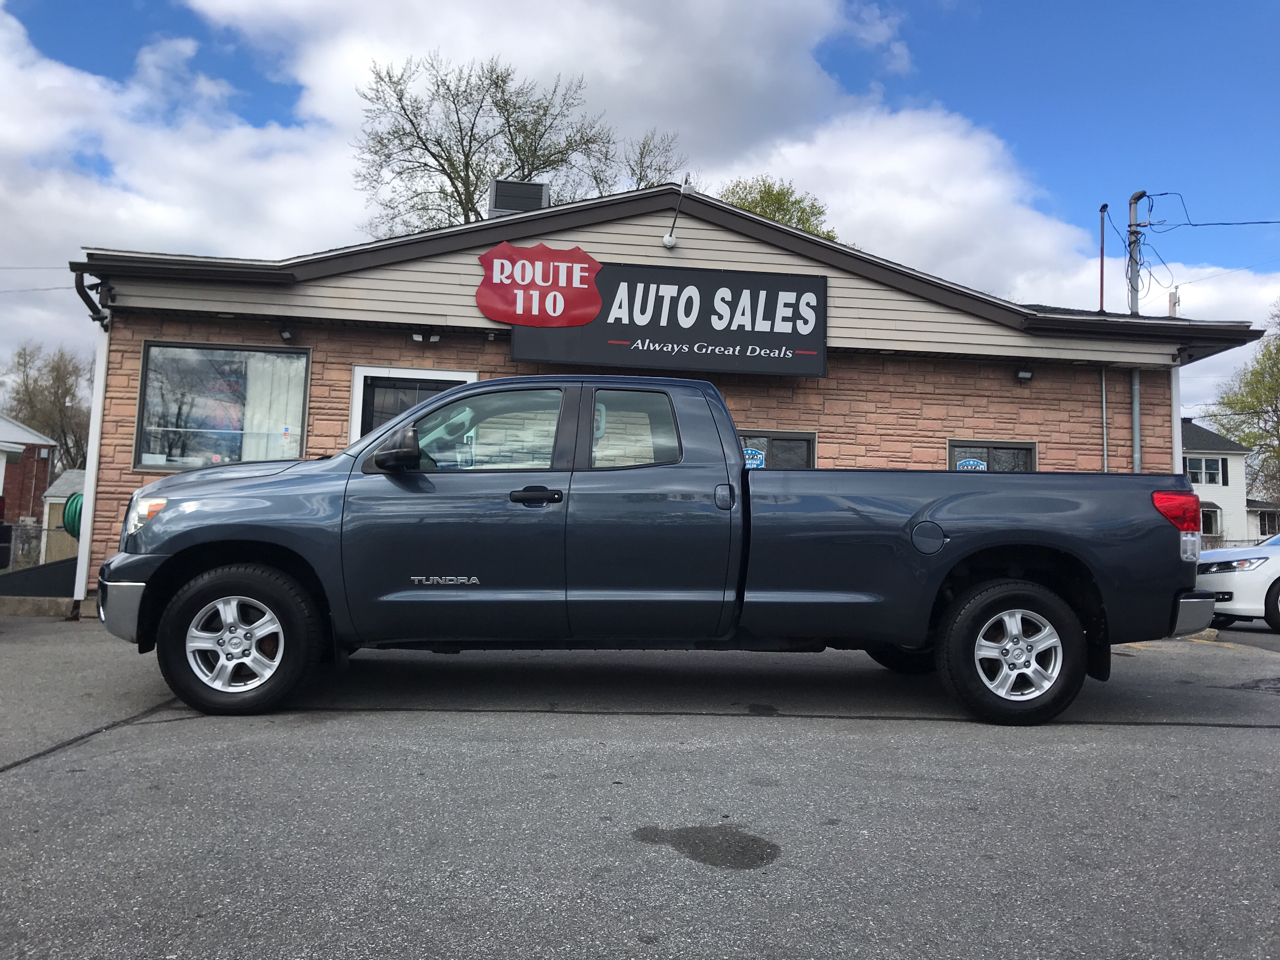 2010 Toyota Tundra Tundra-Grade 4.6L Long Bed Double Cab 4WD